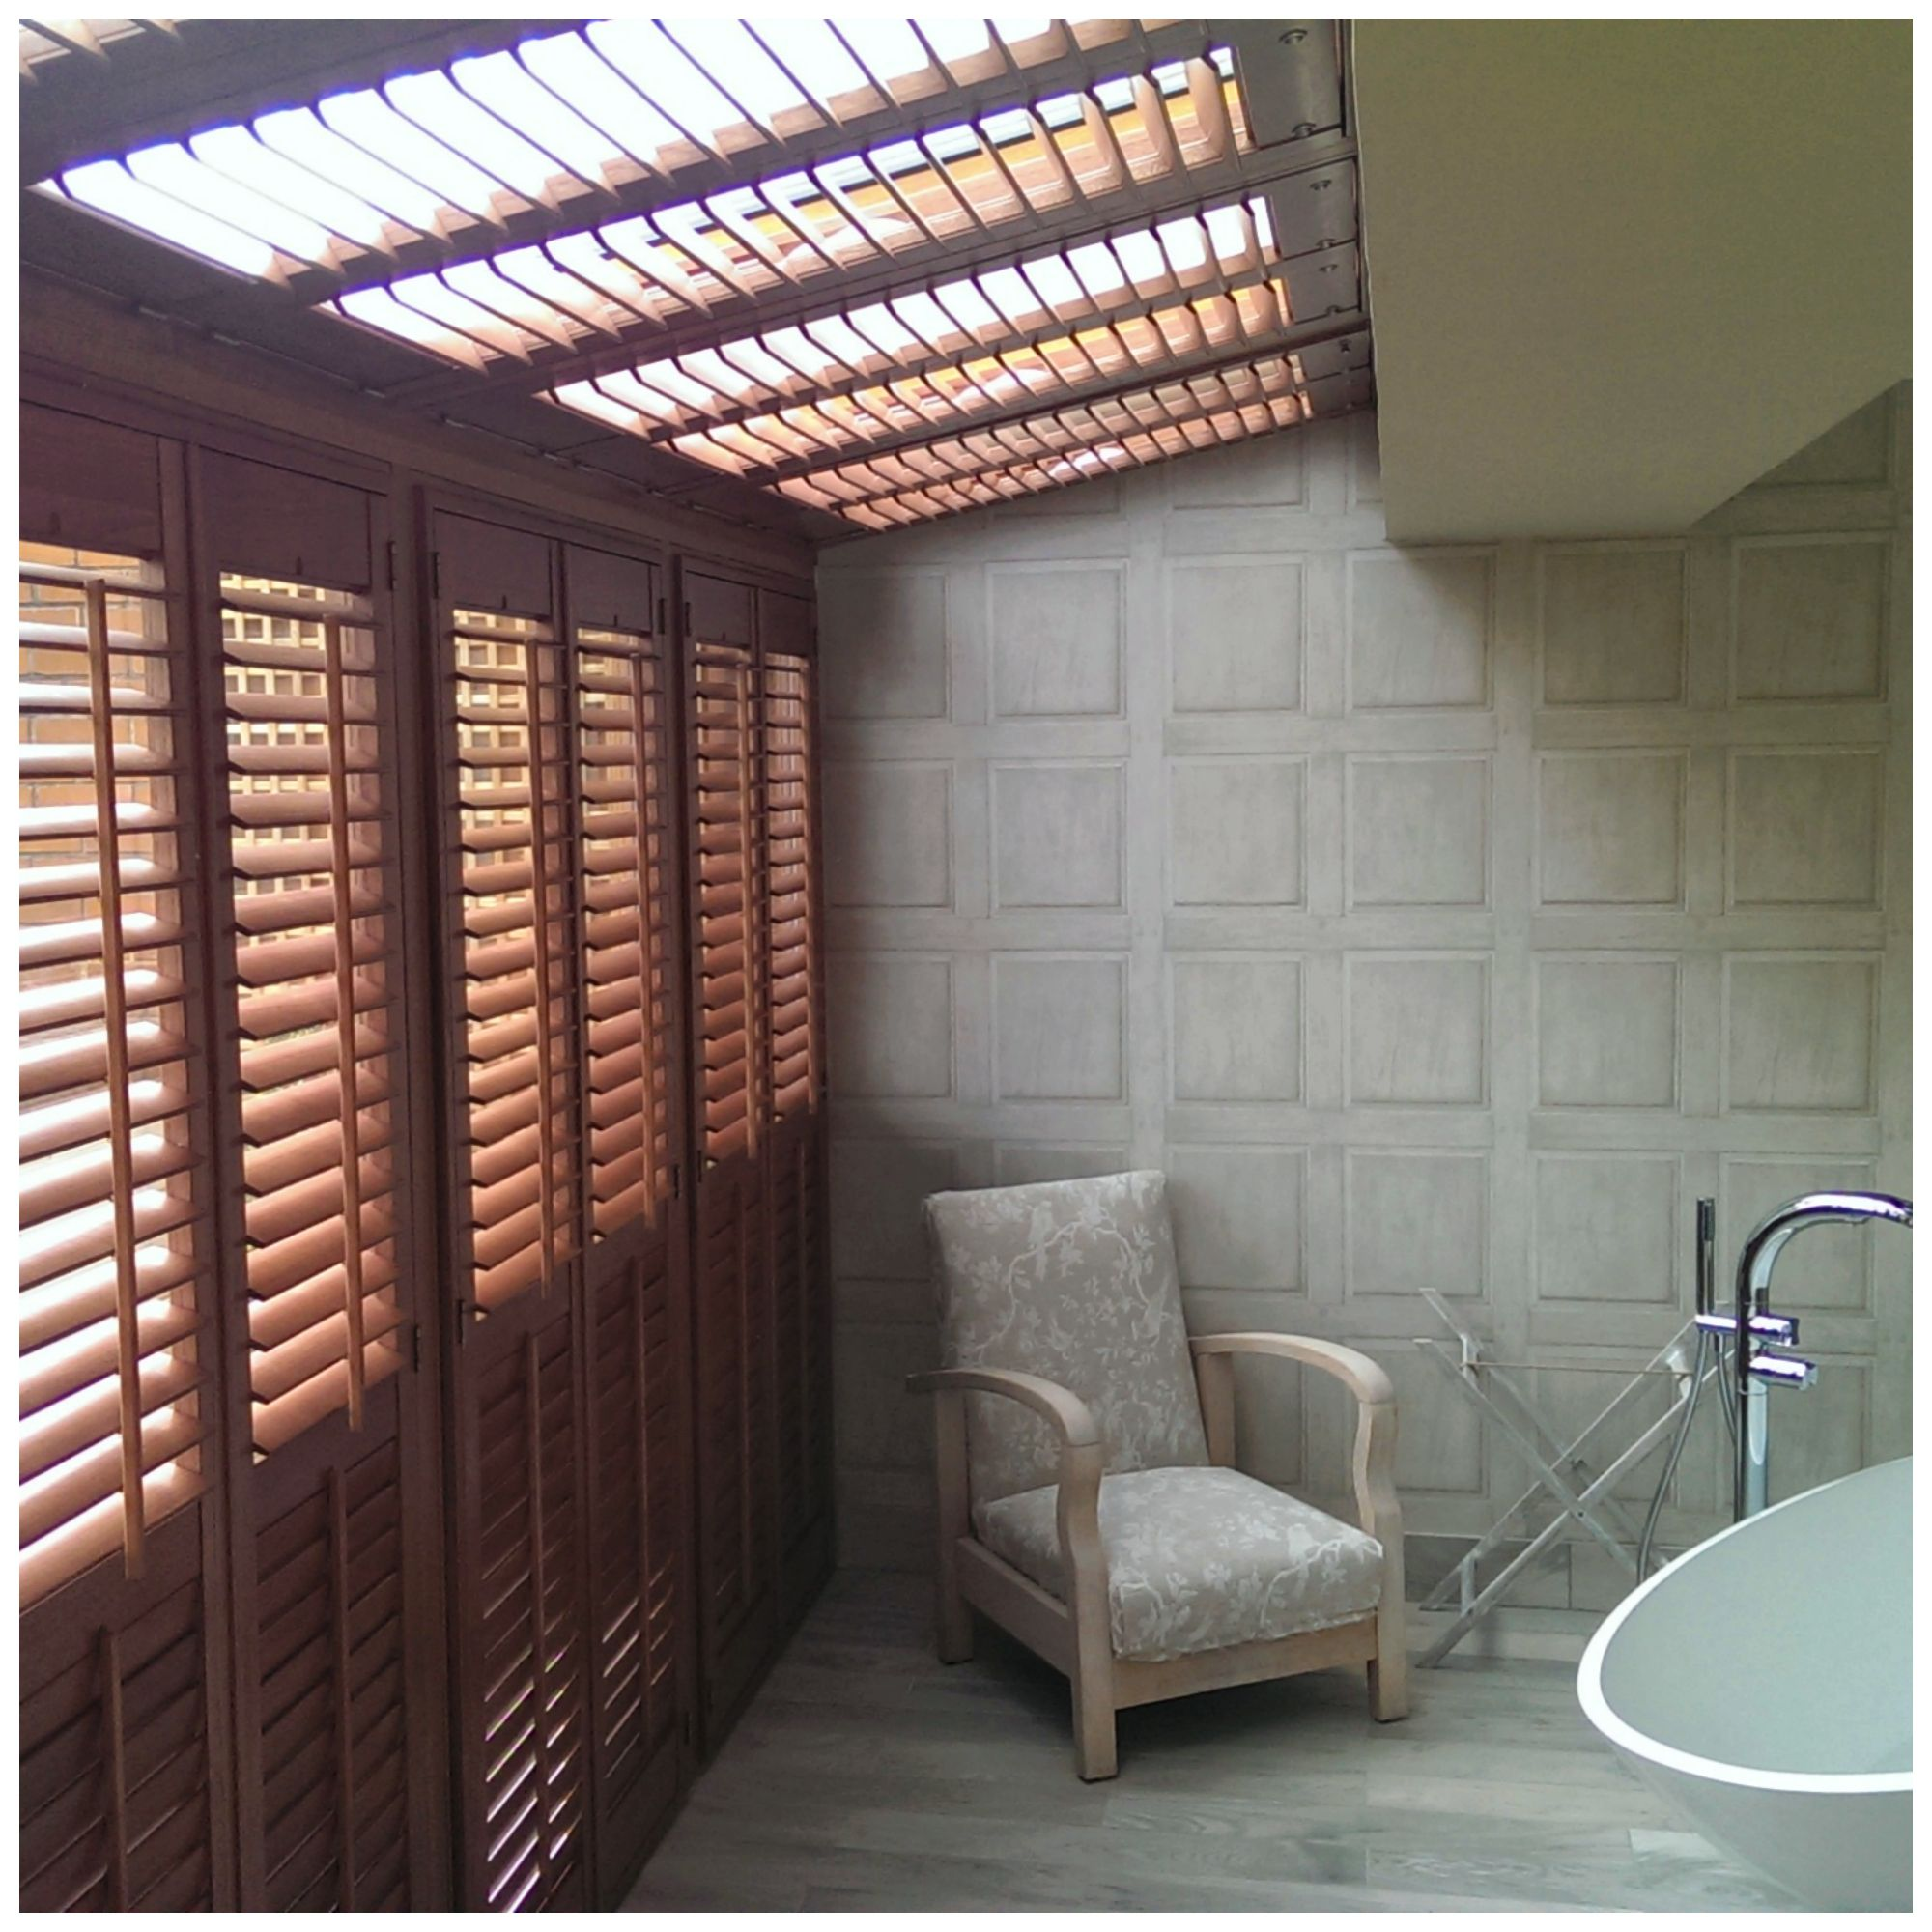 We installed premium hardwood plantation shutters, incorporating a balcony door cutout. The custom colour for the whole design was Sapele. A mix of 63mm louvres (designed for the window plantation shutters) and 89mm louvres (for the roof windows) were incorporated into the design. The finished project features antique brass hardware astragal doors, with spring loaded catches at the top and hinges at the bottom. An electronic remote control manages the tilt system of the angled roof windows.